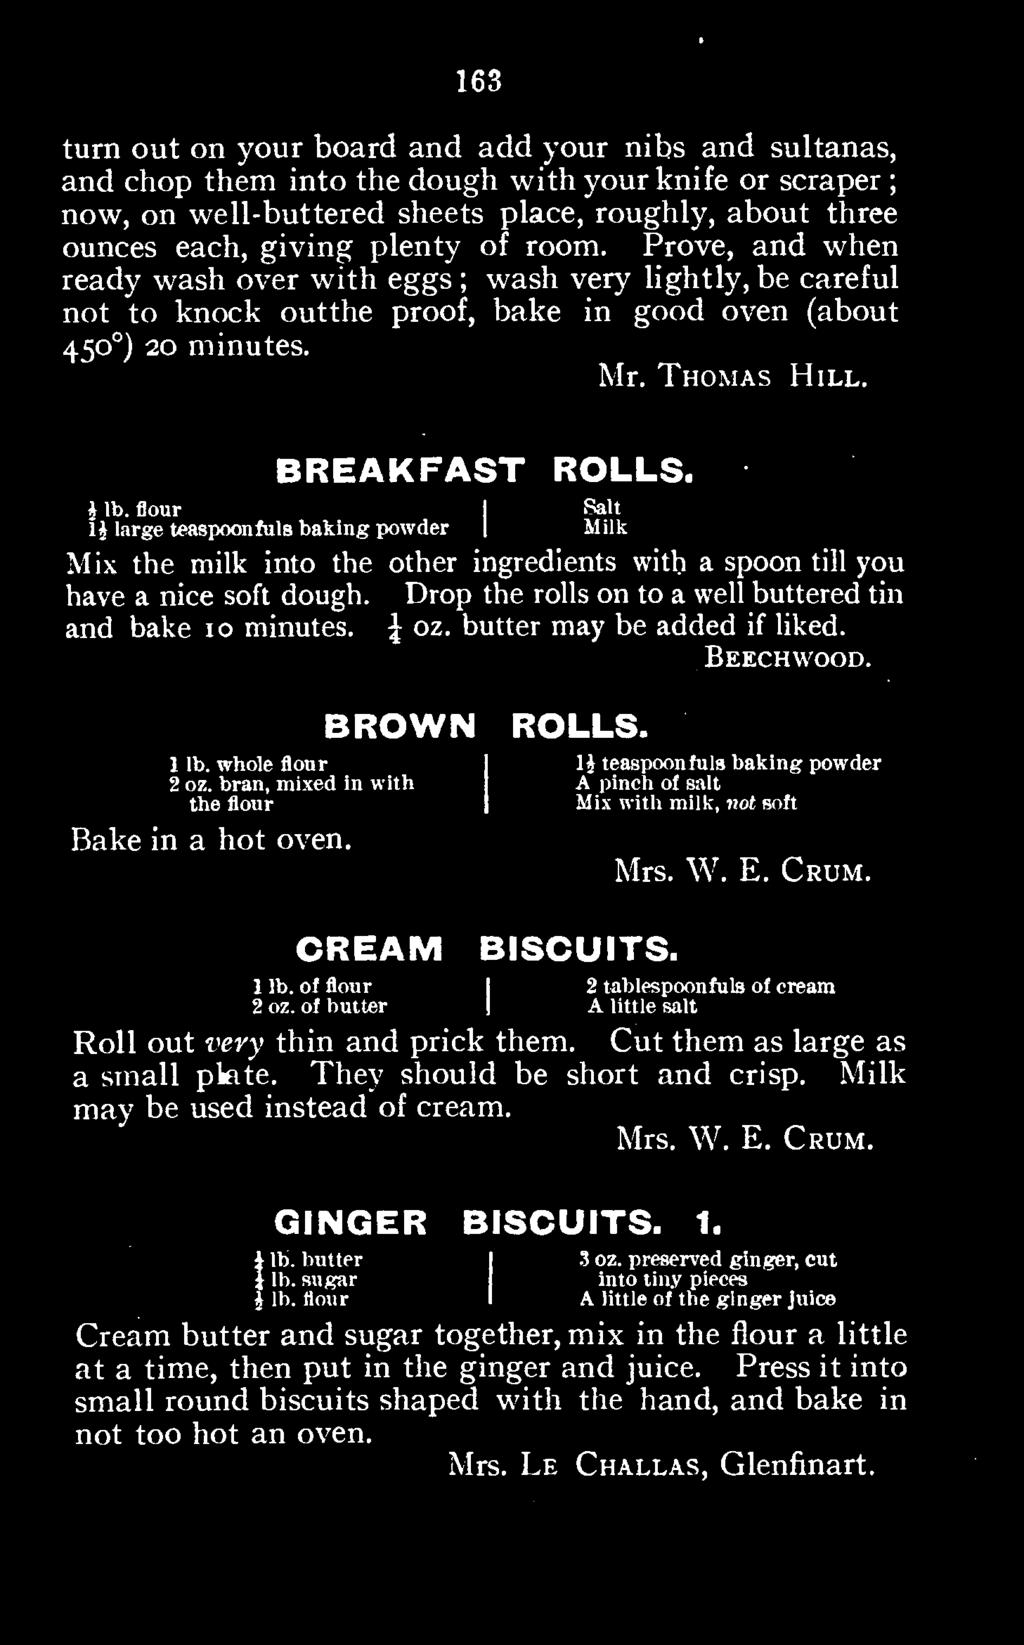 whole bran, mixed flour in with 1 A li pinch teaspoonfuls of salt baking powder the flour I Mix with milk, not soft Bake in a hot oven. Mrs. W. E. Crum. CREAM BISCUITS. 21 oz. lb.